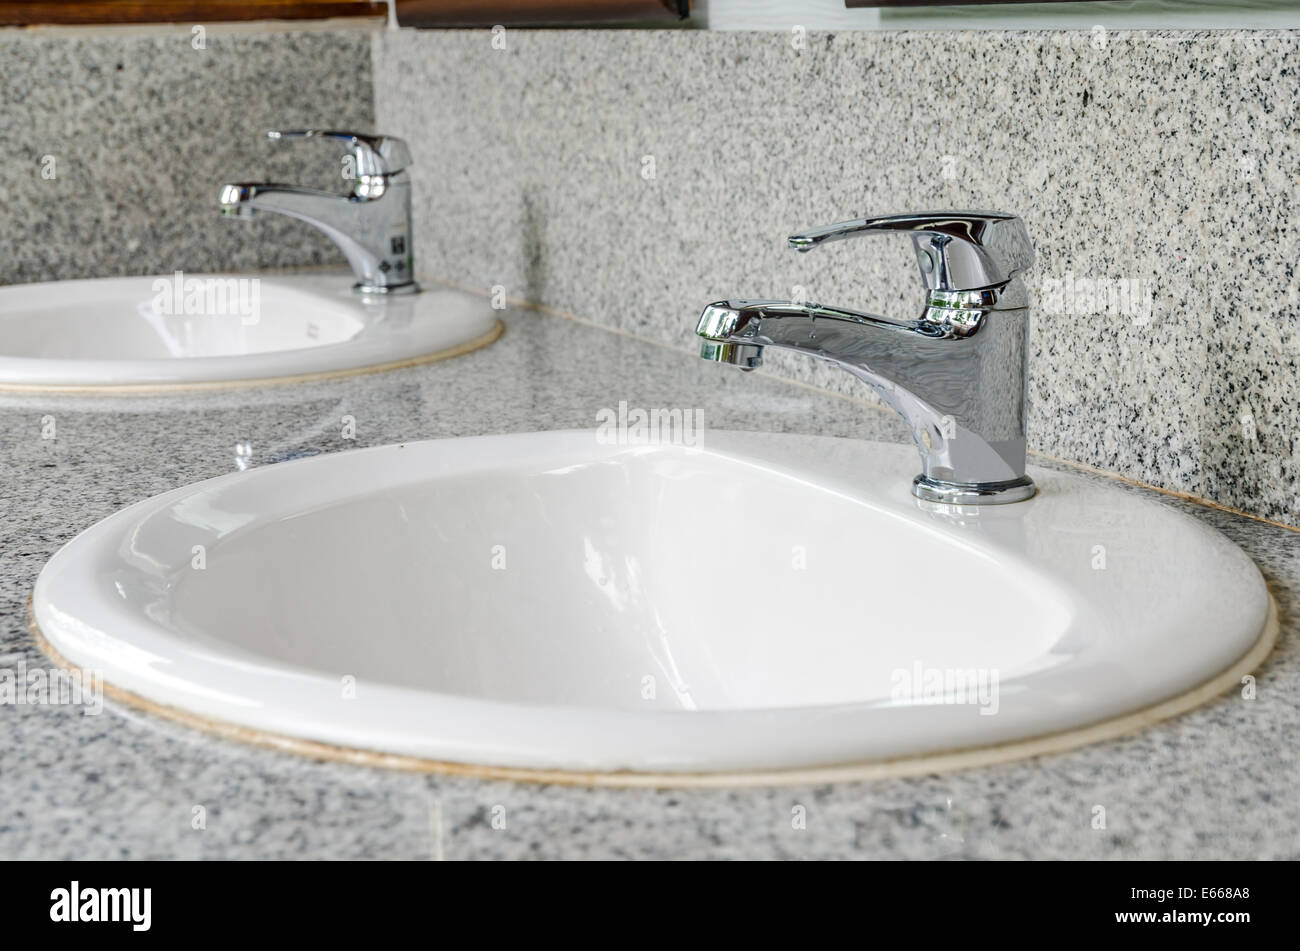 water mobile home html with Stock Photo White Sink And Faucet In A Bathroom 72667680 on Calvados Paul Signac besides Sailboat At Sunset Shay Levy together with At Home With Pete Evans moreover Wallpaper Flowers waterdrop 71223 moreover Lombard Street San Francisco California Christine Hopkins.